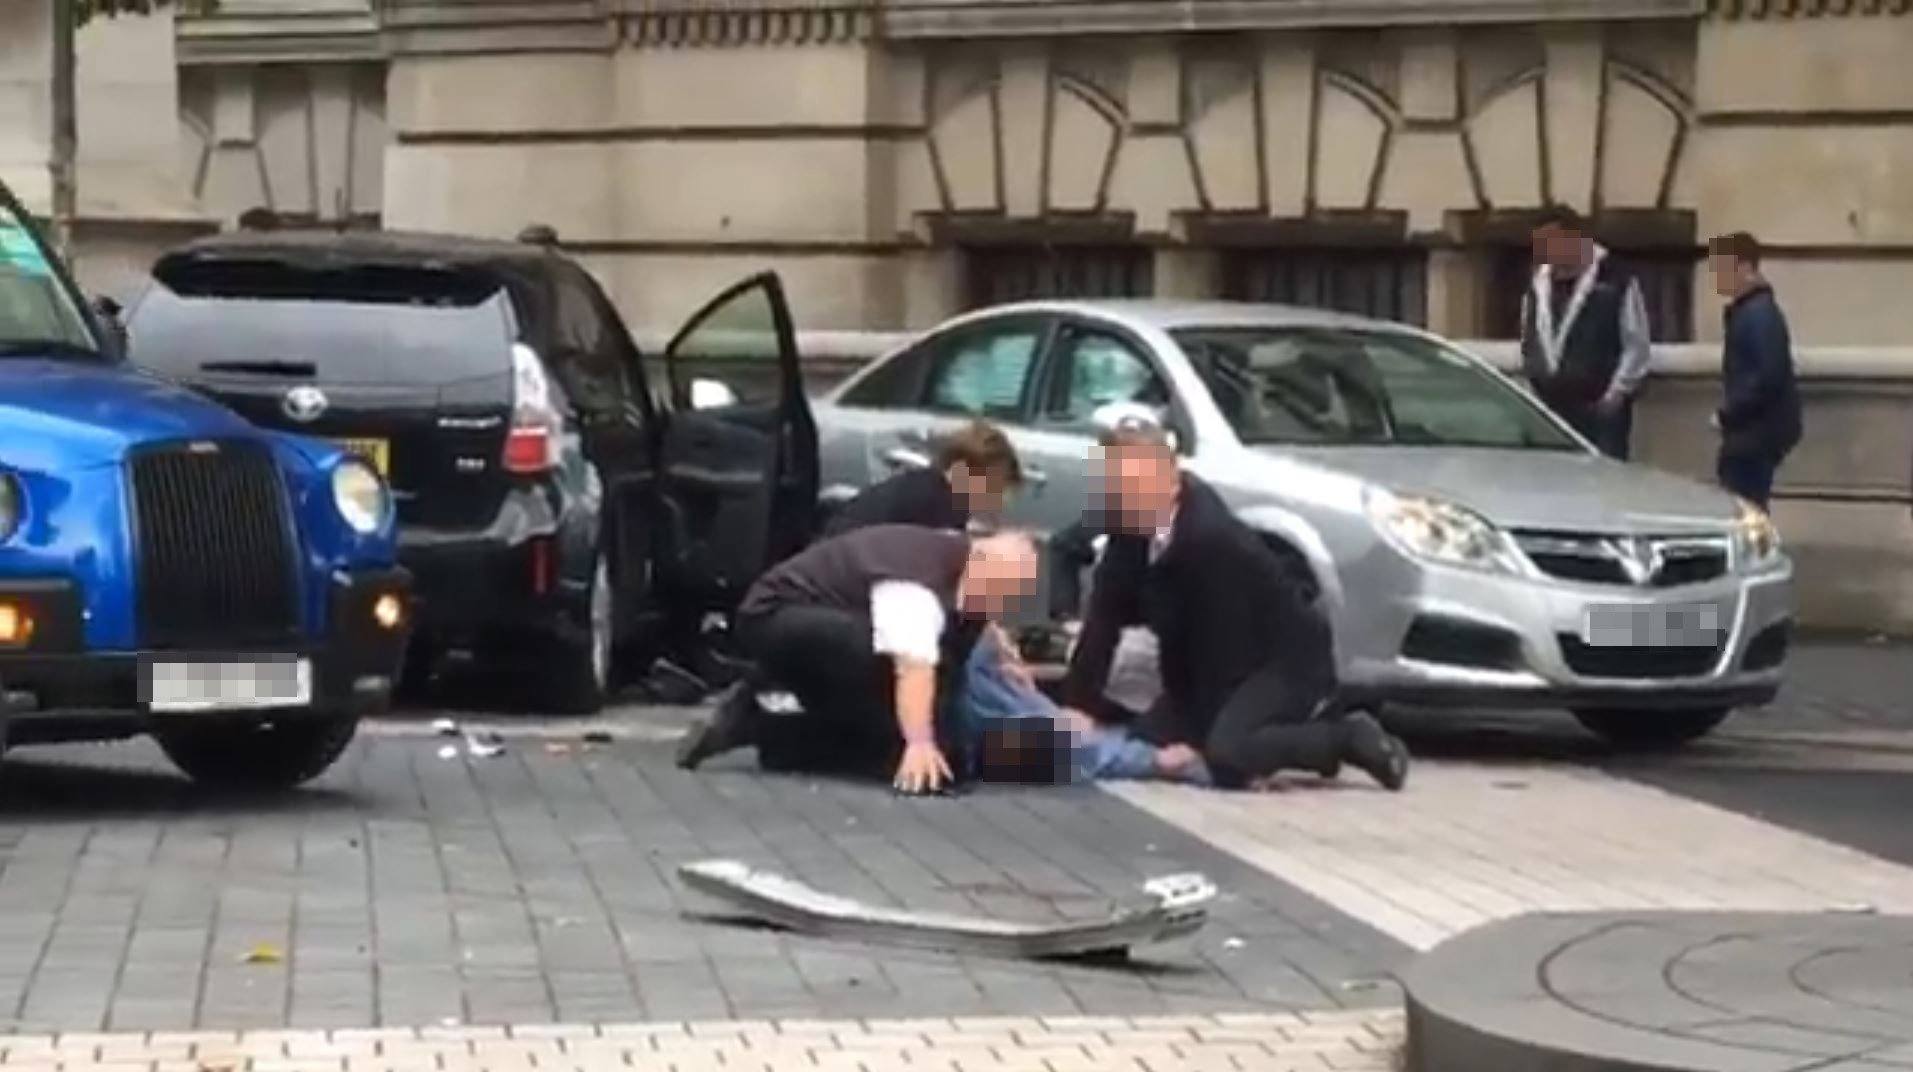 Moment Natural History Museum suspect is pinned to ground after driving into pedestrians